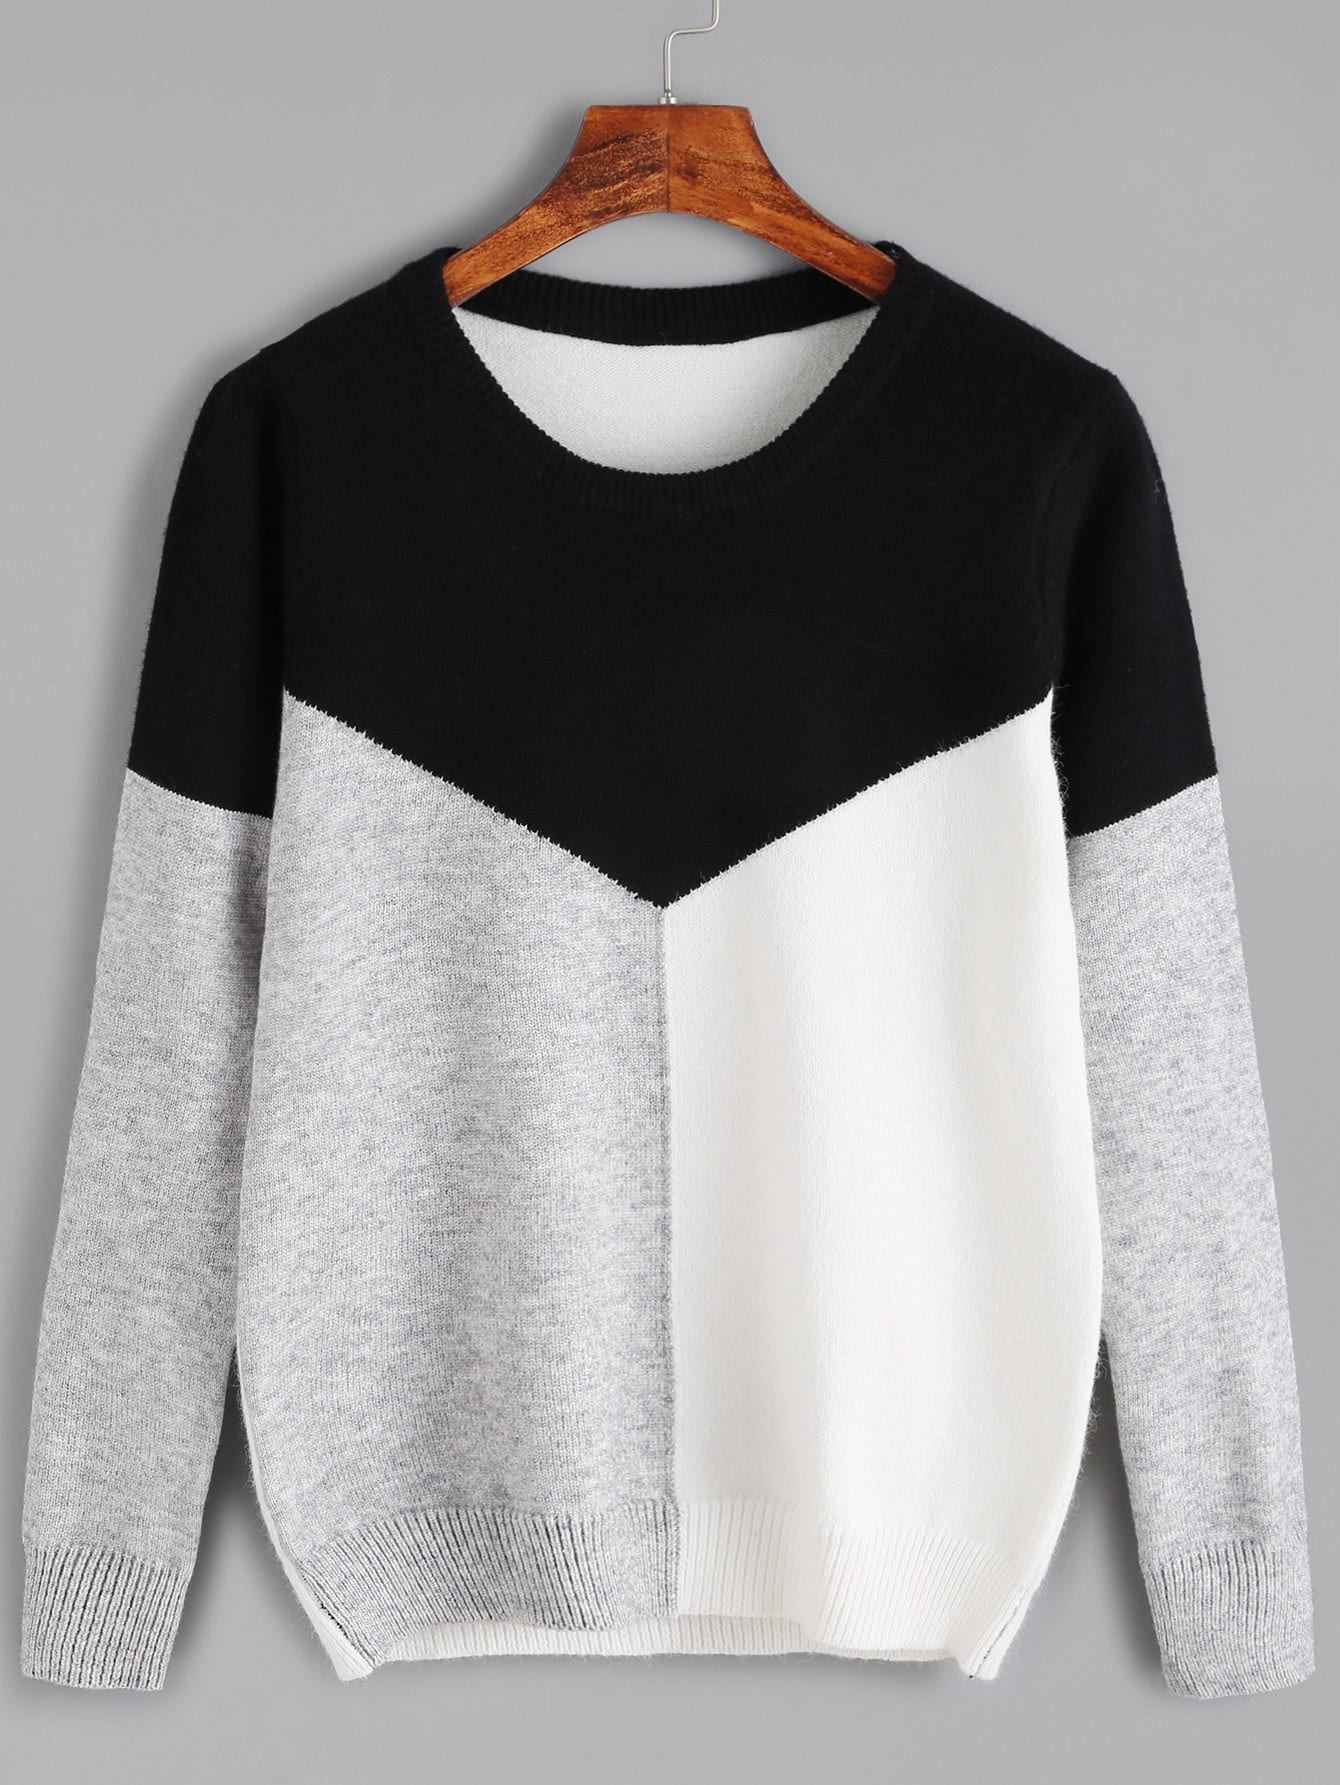 Color Black Round Neck Jersey Sweater sweater160926301